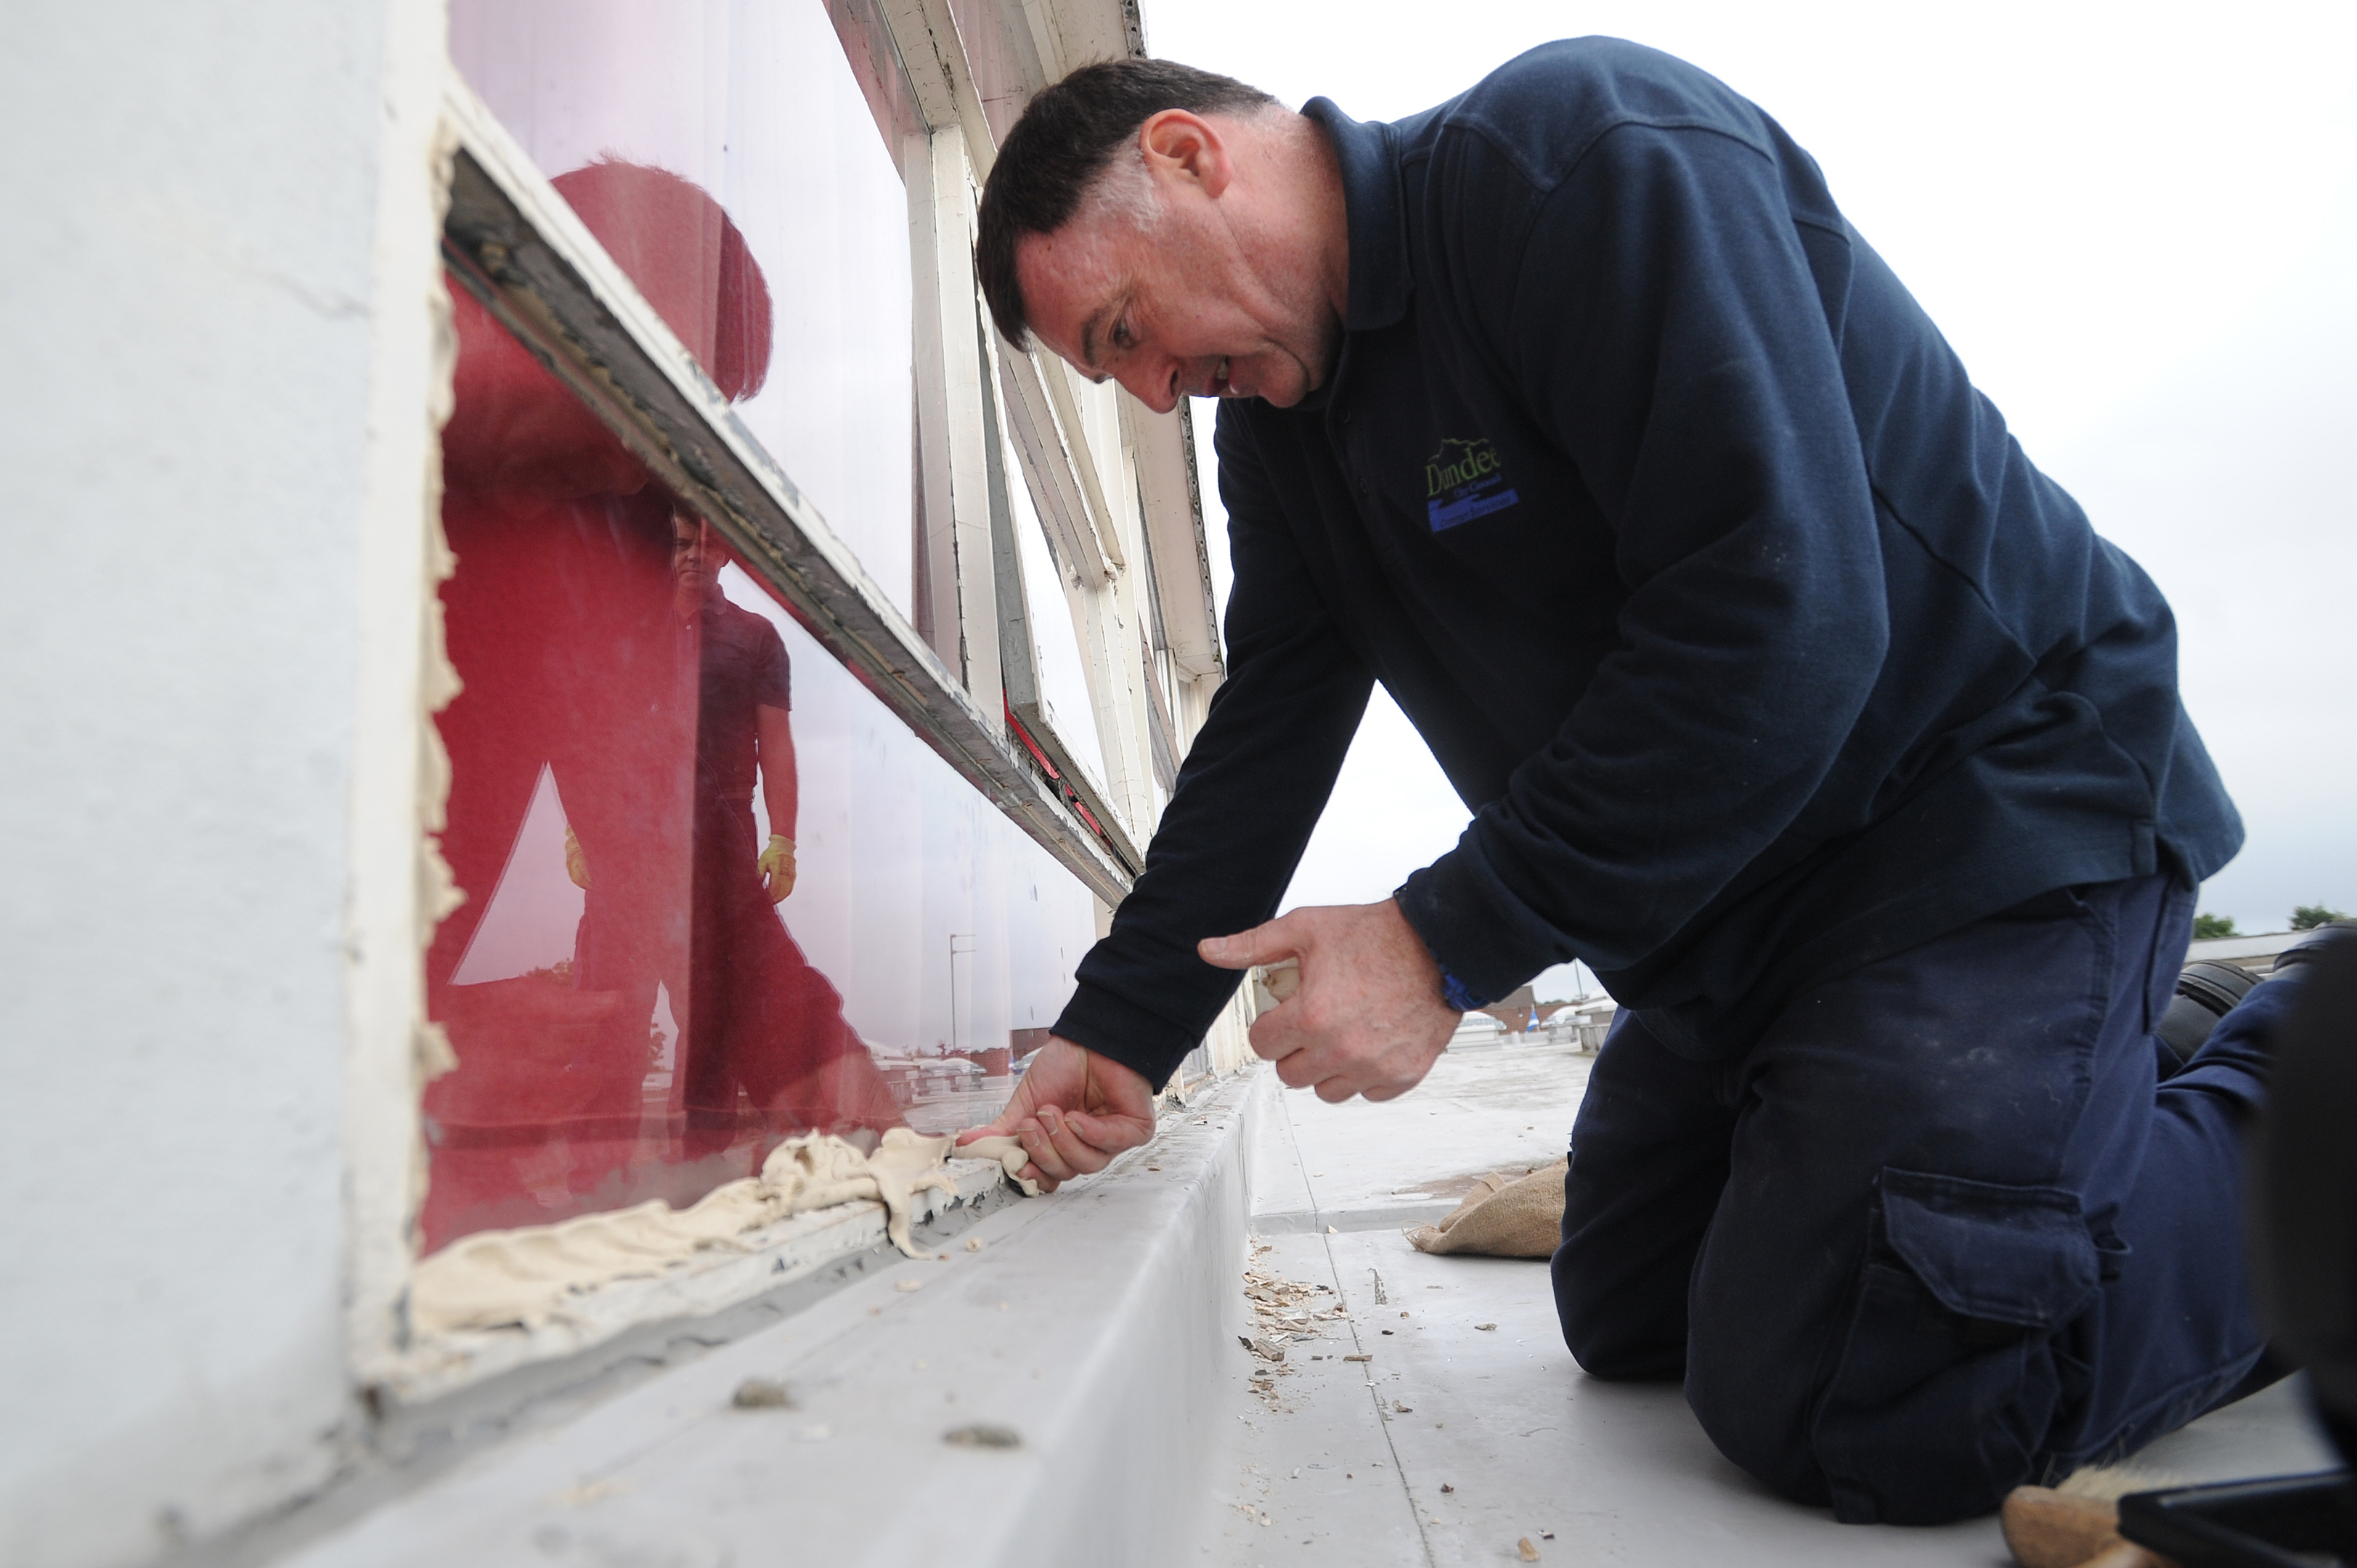 A repair man dealing with the damage inflicted by the vandals.